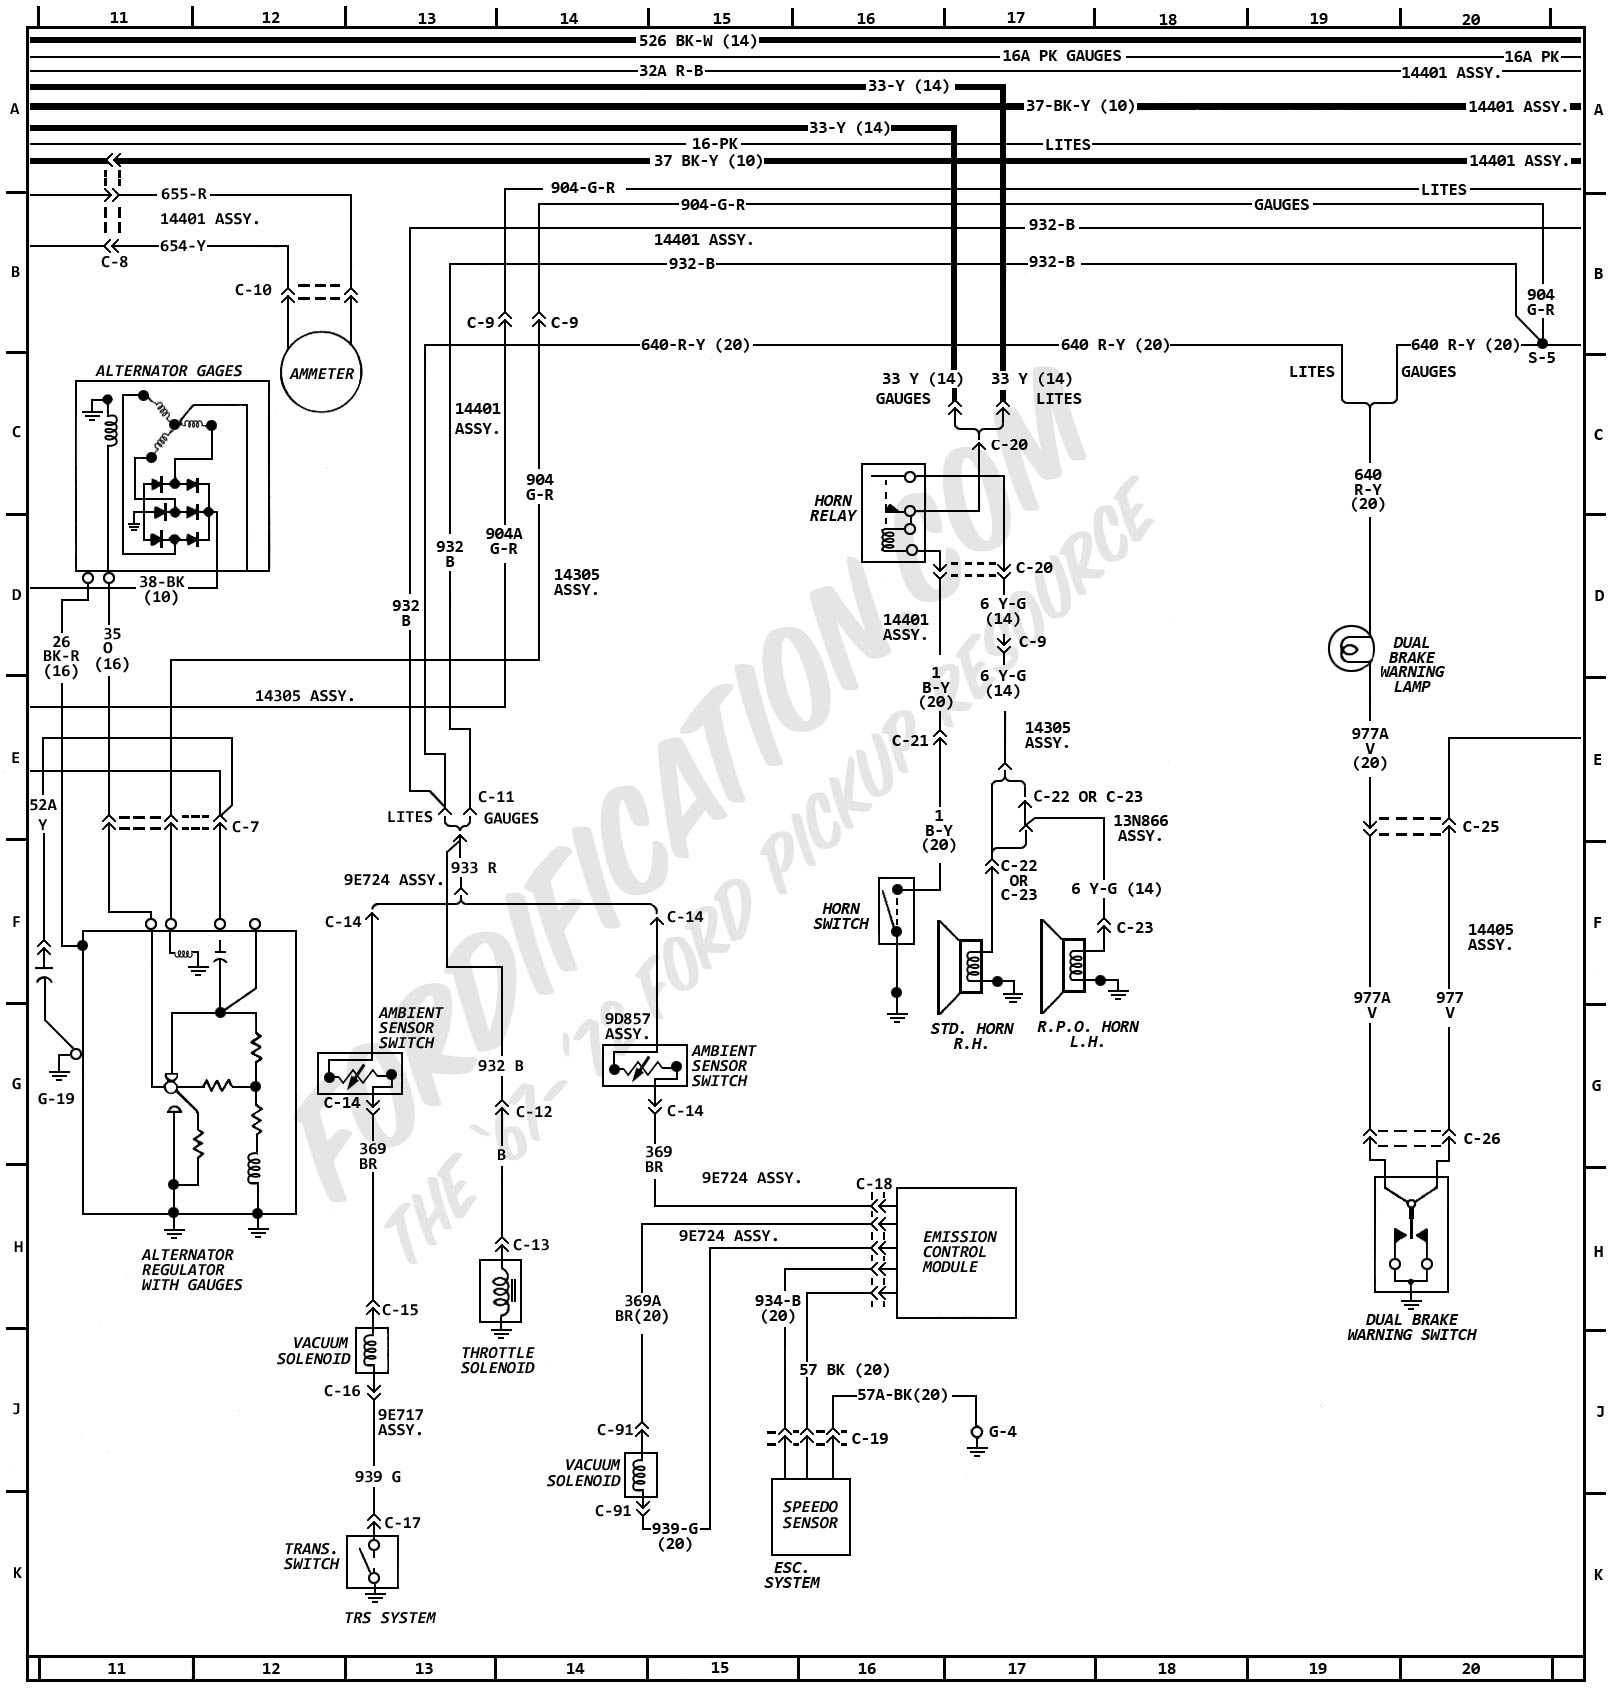 1993 ford explorer instrument cluster diagram html